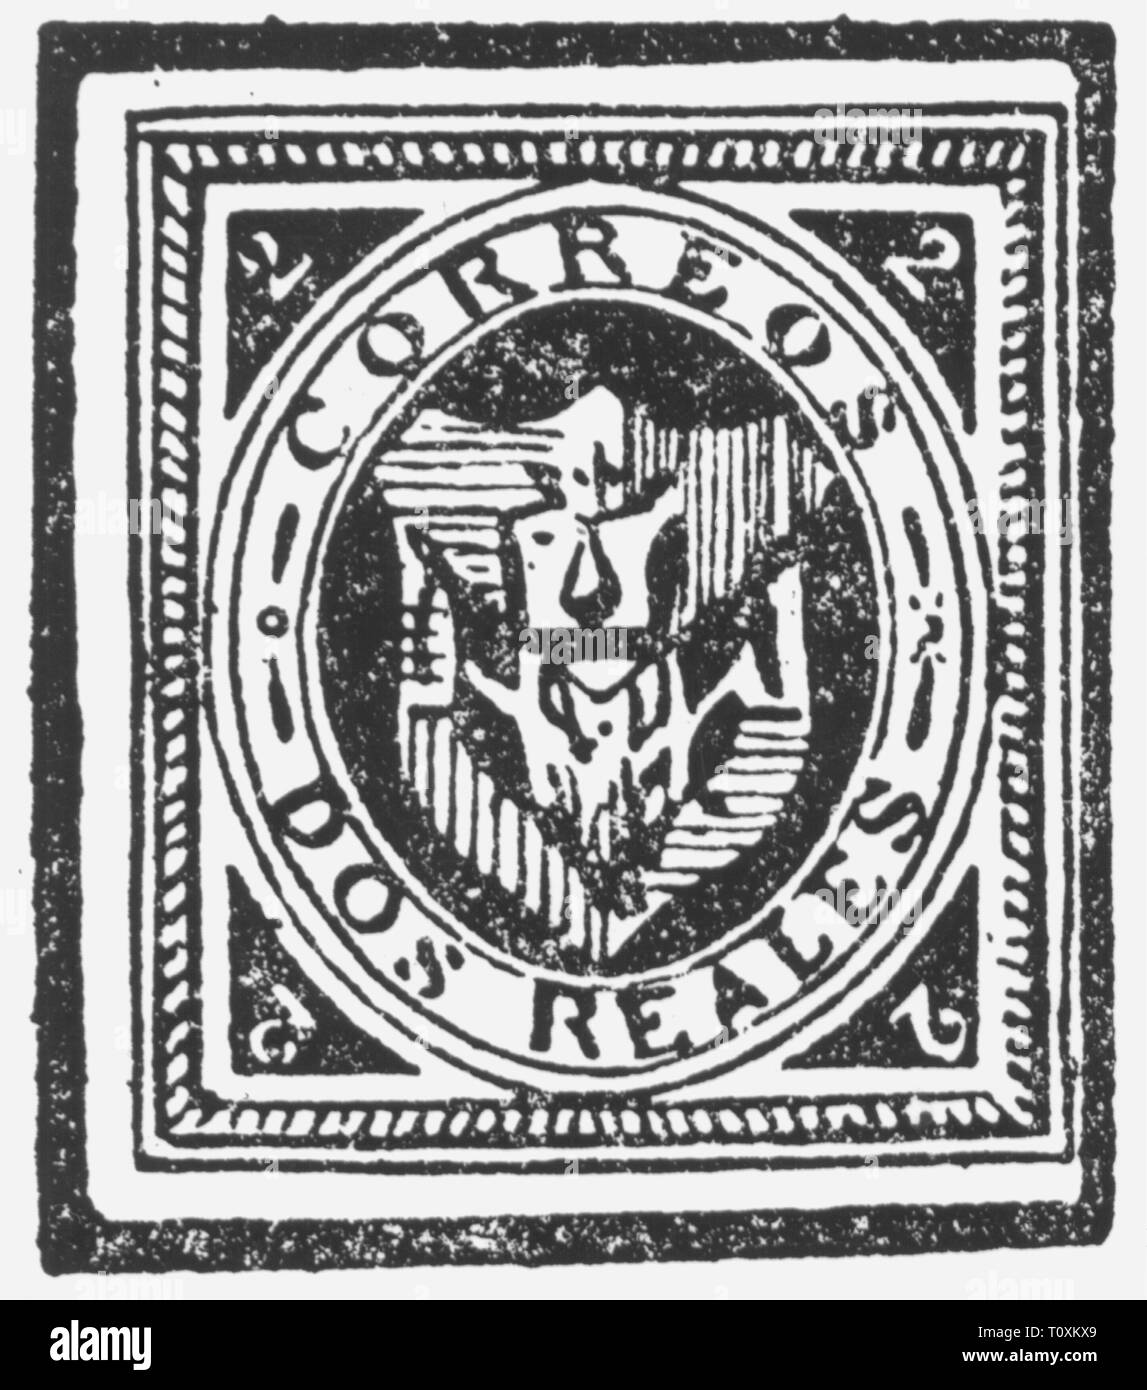 mail, postage stamps, forgery, fake 2 reales postage stamp, Dominican Republic, falsification by Samuel Allan Taylor, 1865, Additional-Rights-Clearance-Info-Not-Available - Stock Image